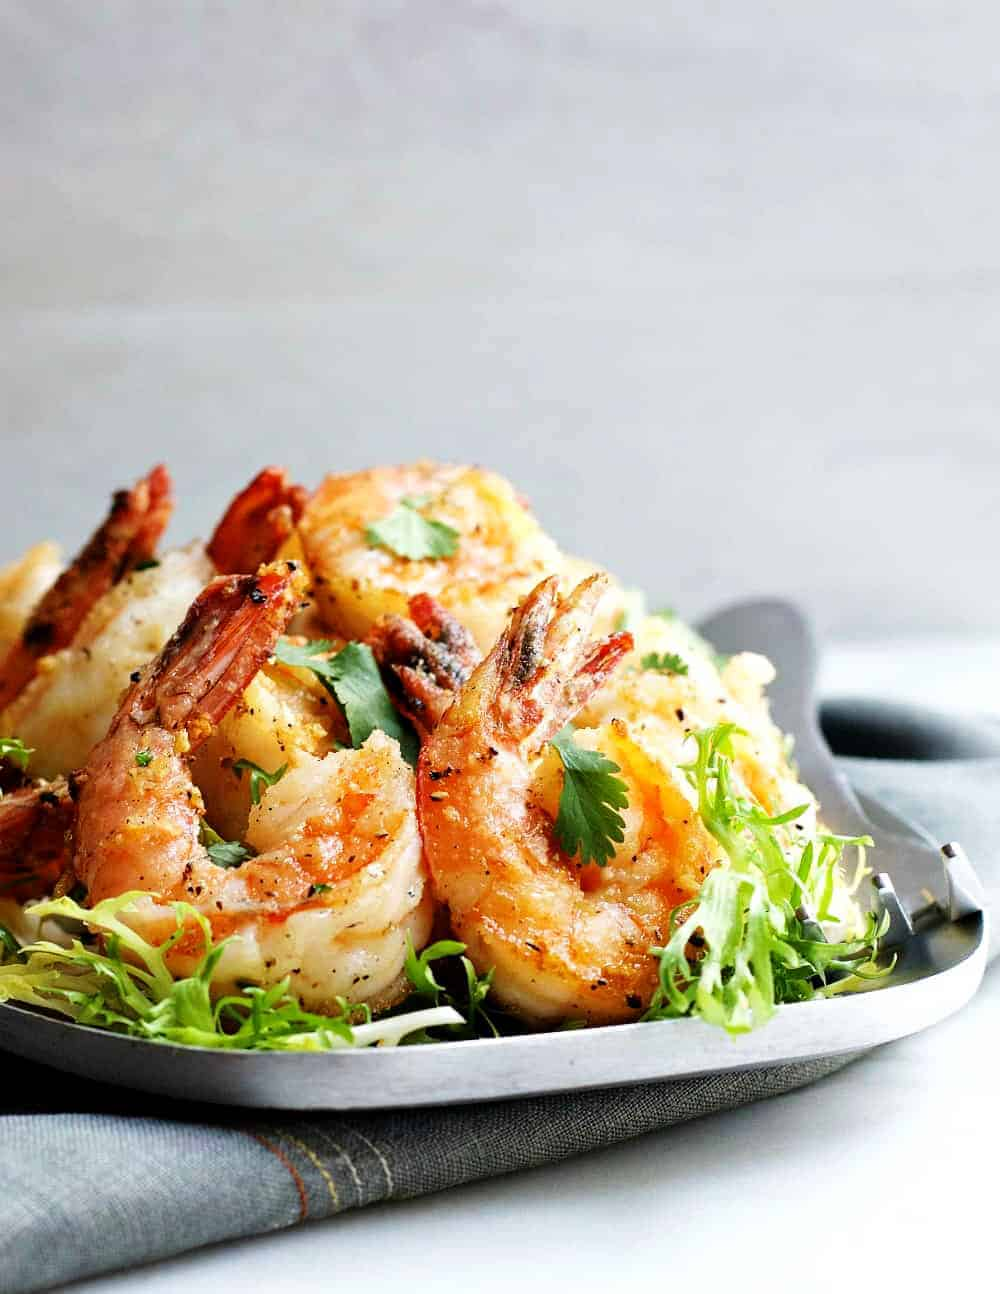 Salt-and-Pepper-Shrimp-served-on-a-stainless-steel platter